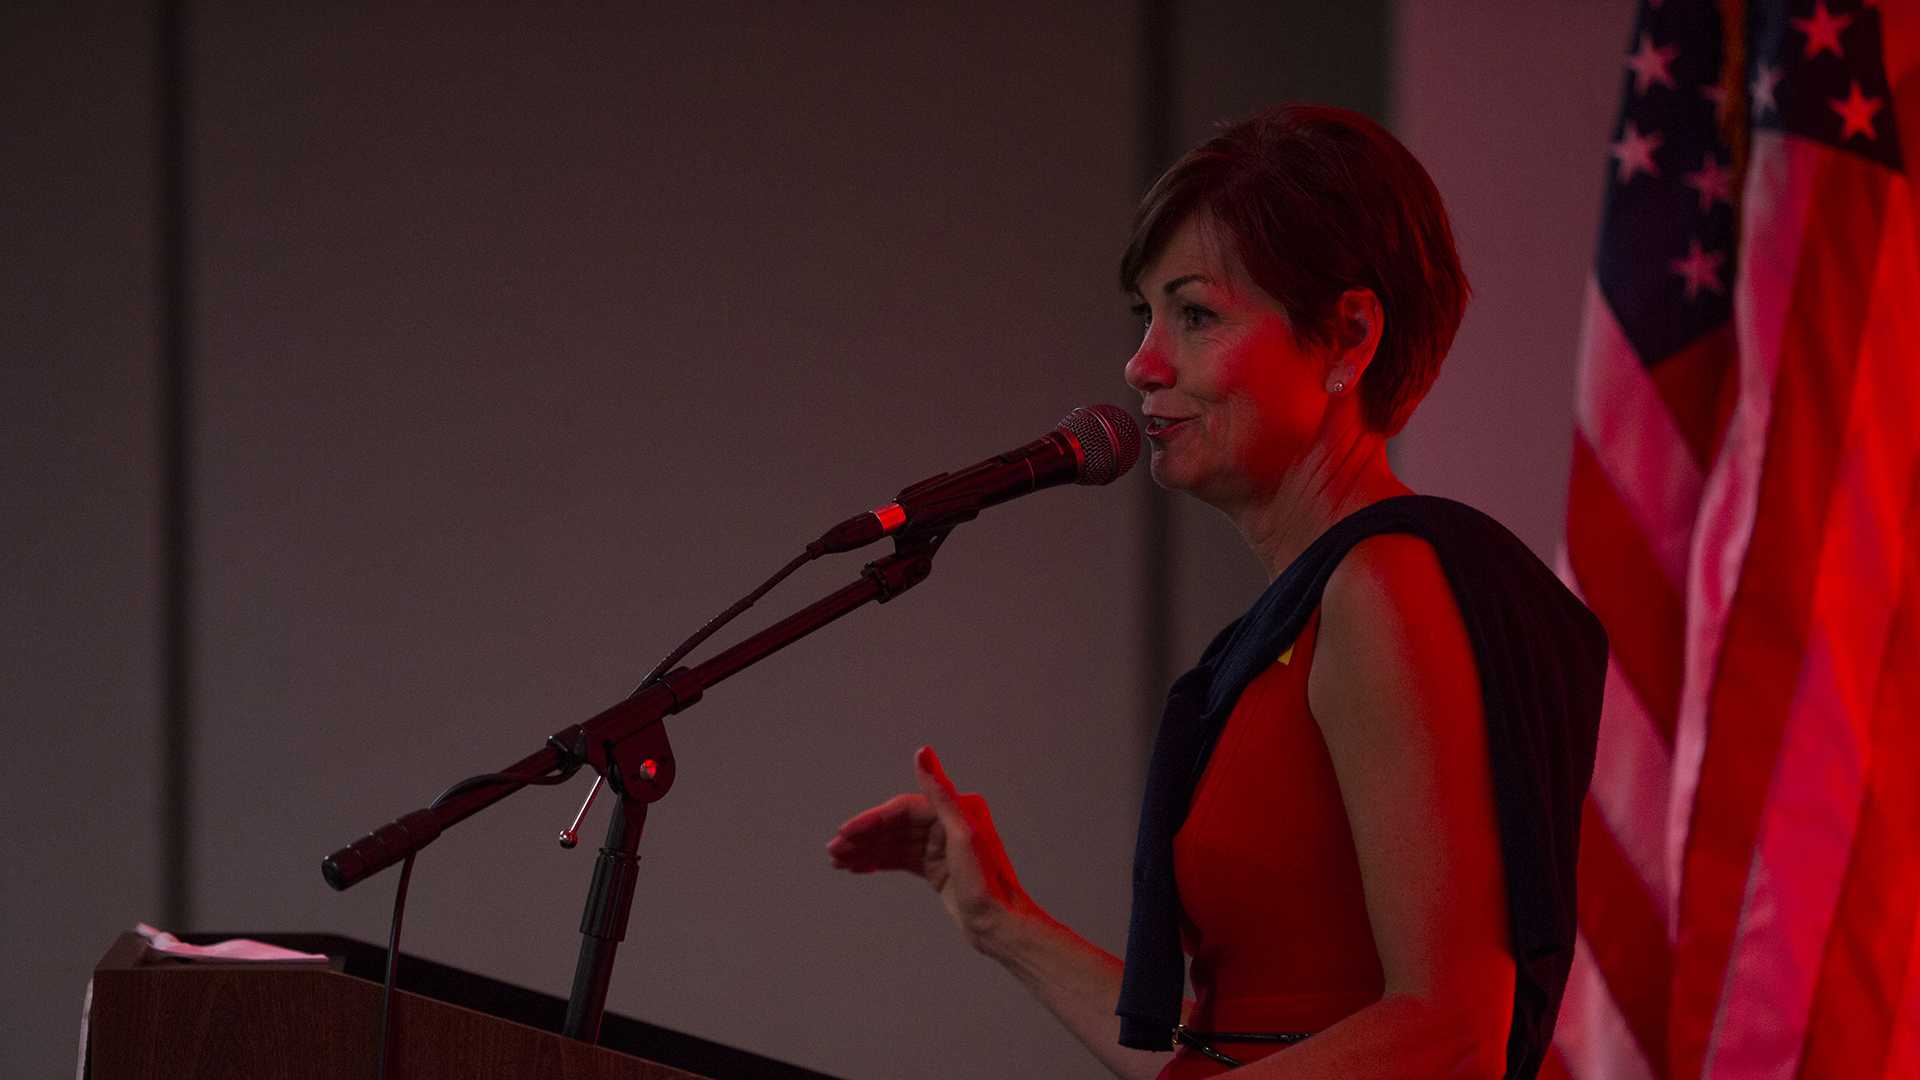 Iowa Gov. Kim Reynolds speaks during a Johnson County Republicans event in Coralville at the Radisson Hotel Conference Center on Thursday, July 6, 2017. Reynolds spoke to Republican constituents who had a minimum donation of $25 per individual to attend, $125 to host, and $500 to sponsor. (Joseph Cress/The Daily Iowan)